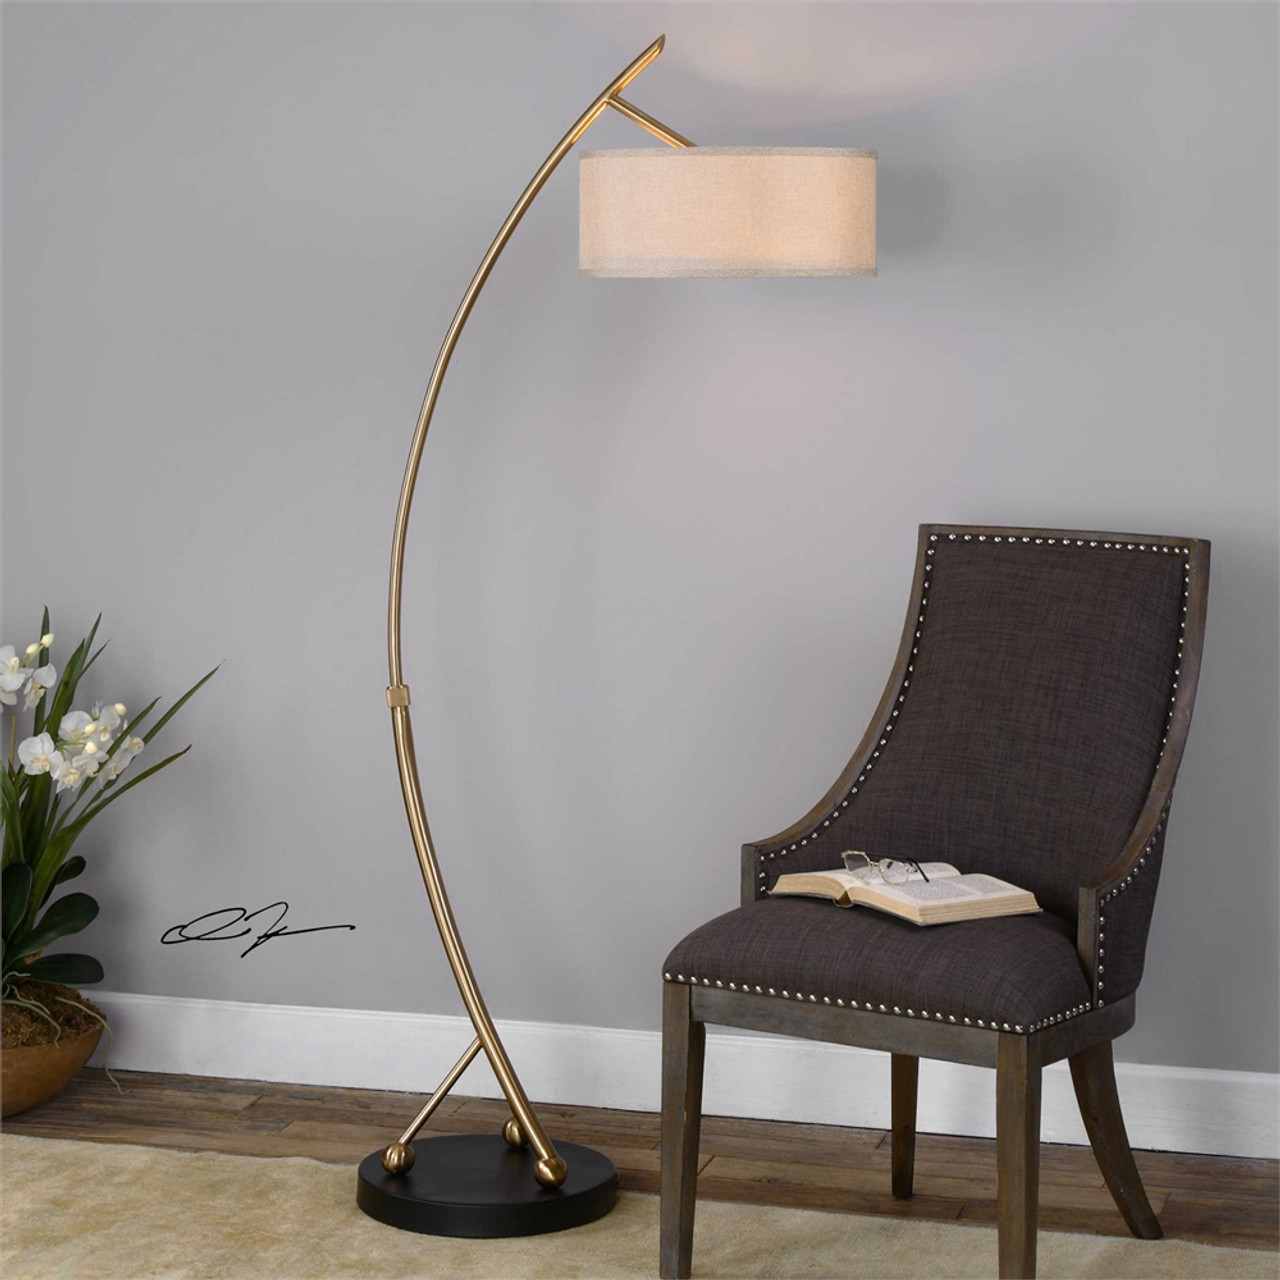 uttermost vardar curved brass floor lamp. Black Bedroom Furniture Sets. Home Design Ideas